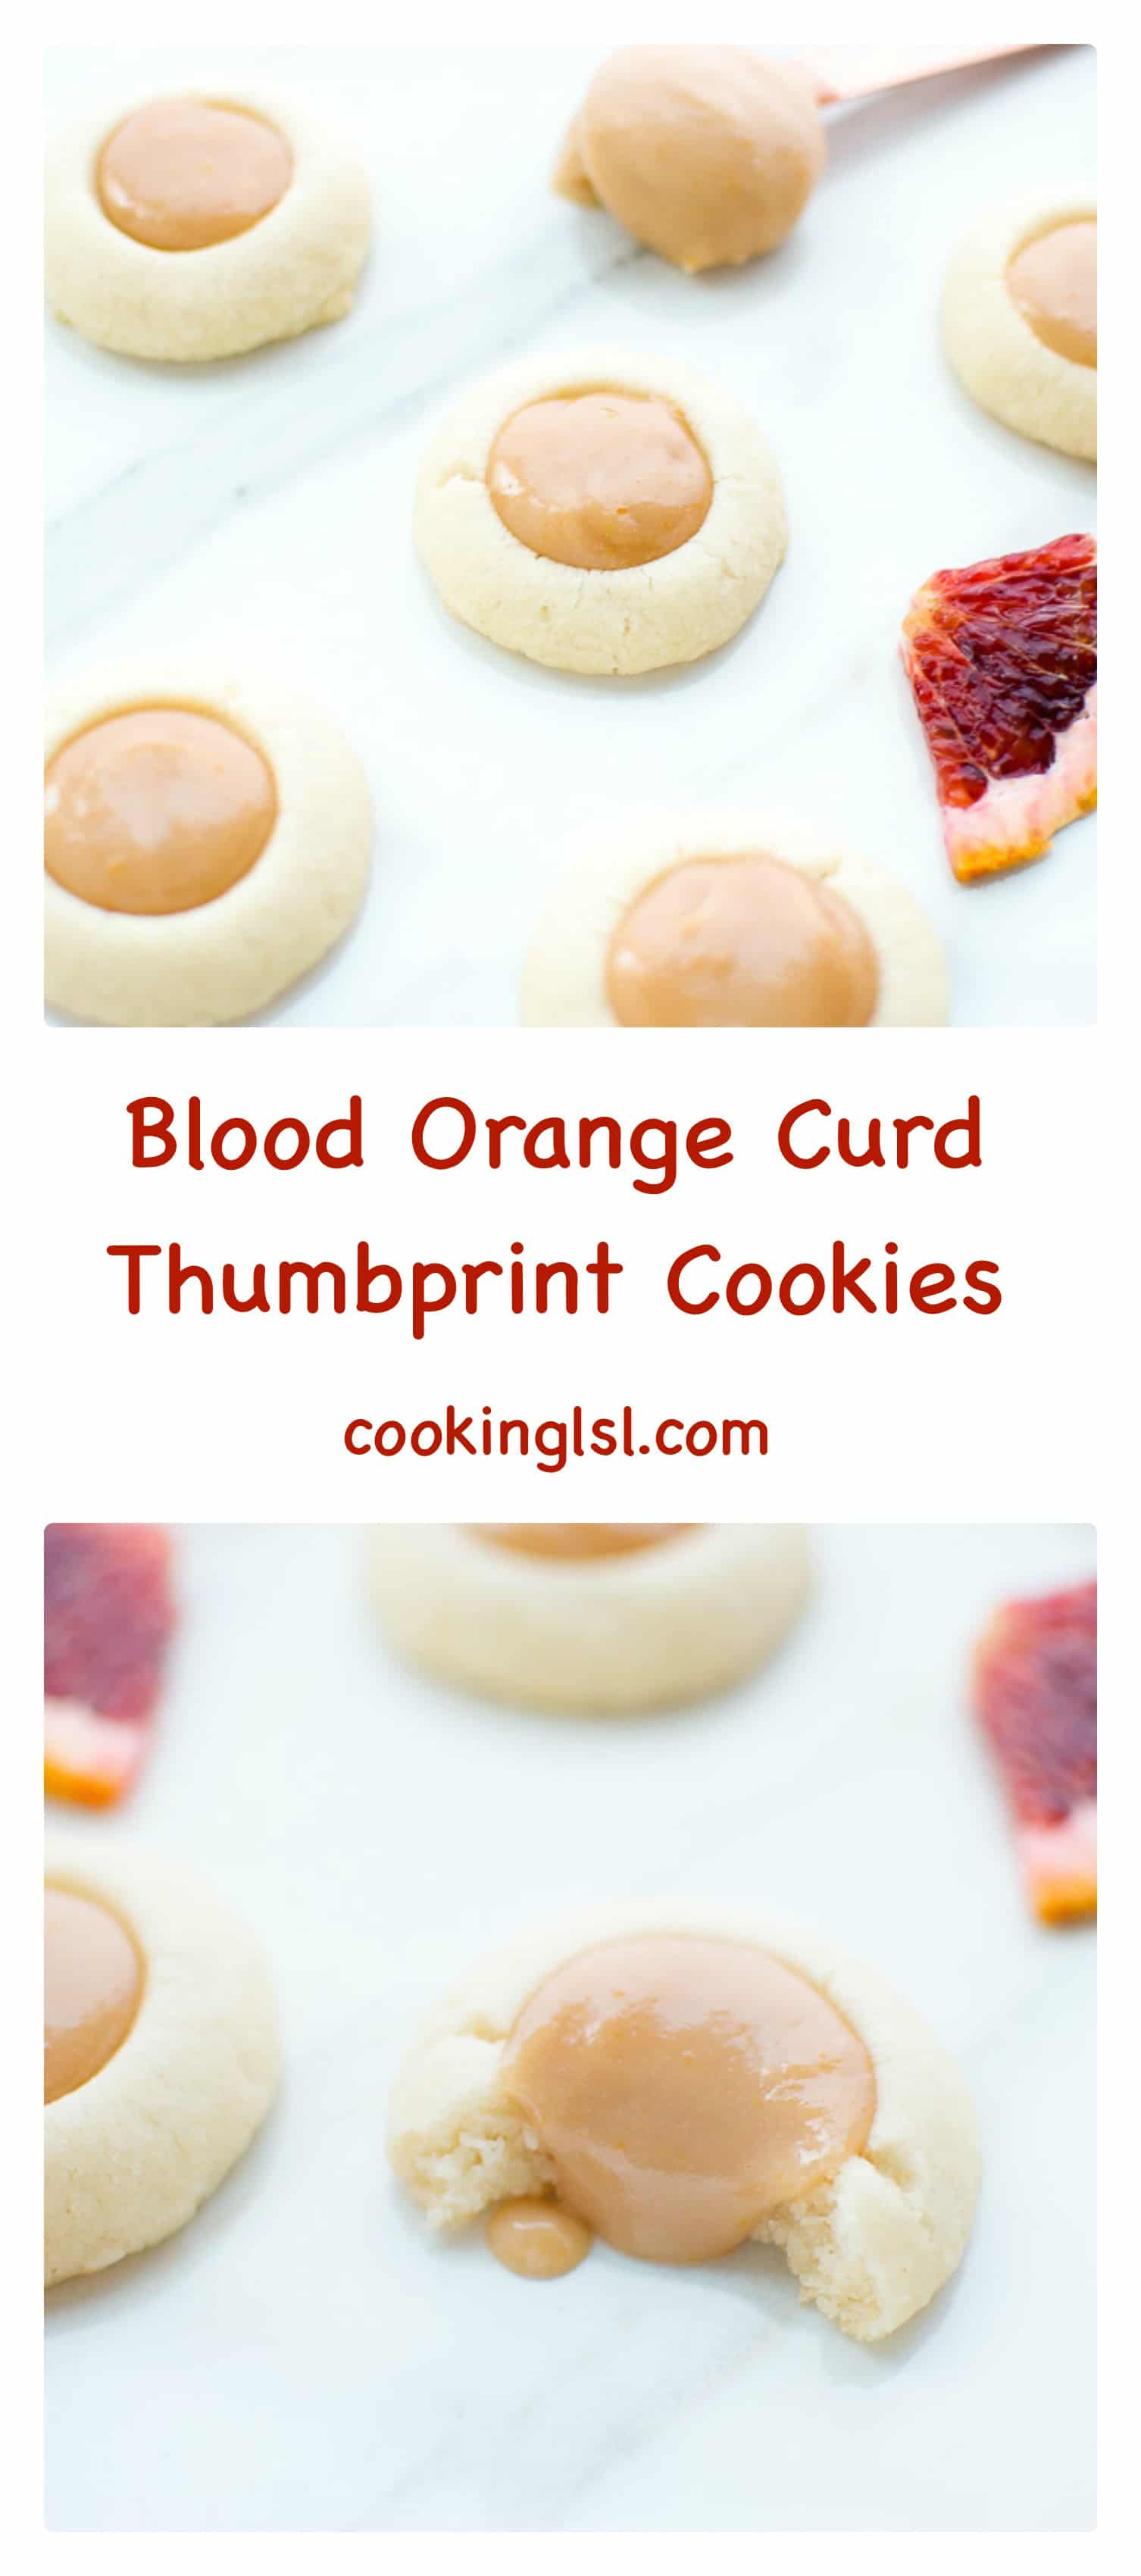 Blood Orange Curd Thumbprint Cookies